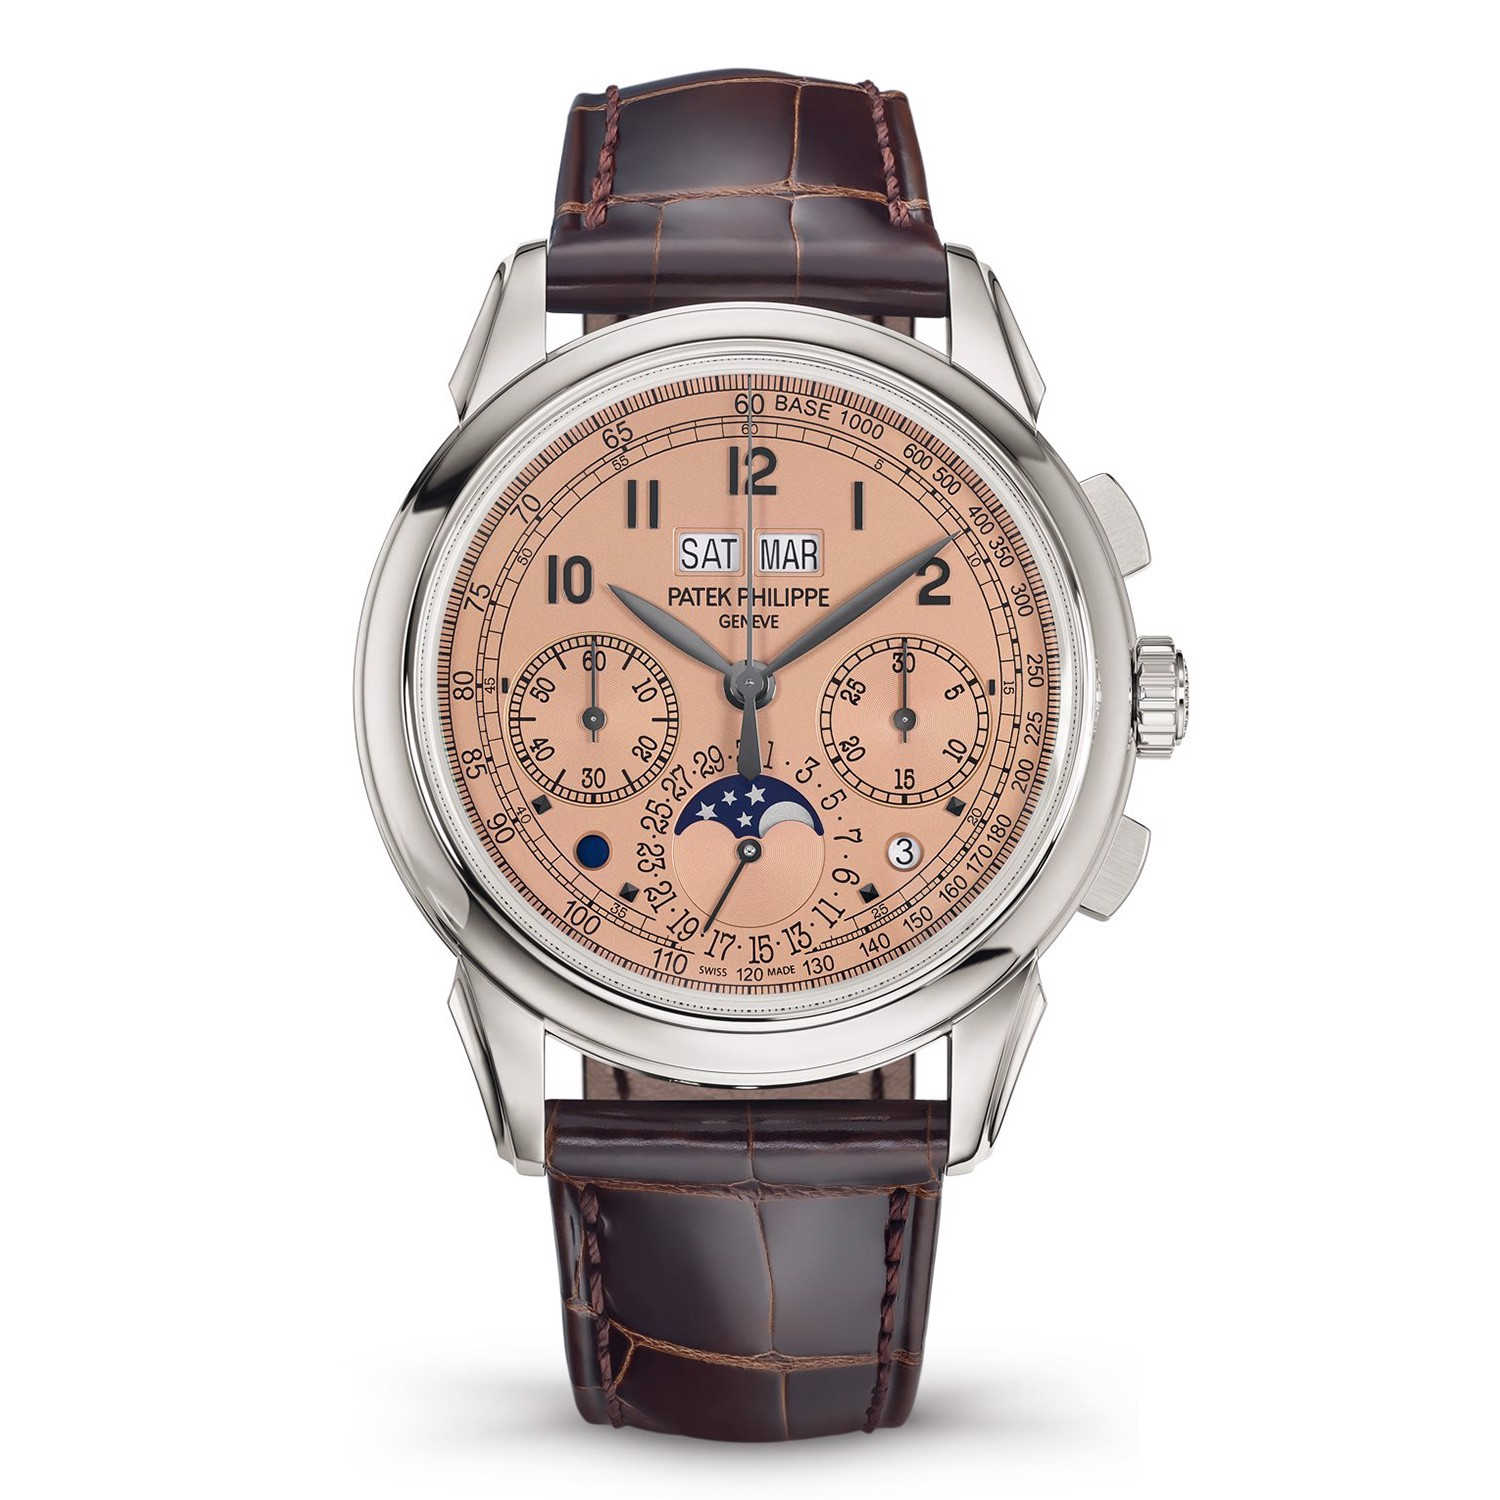 Patek Philippe Grand Complications 5270P-001 - Perpetual Calendar Chronograph